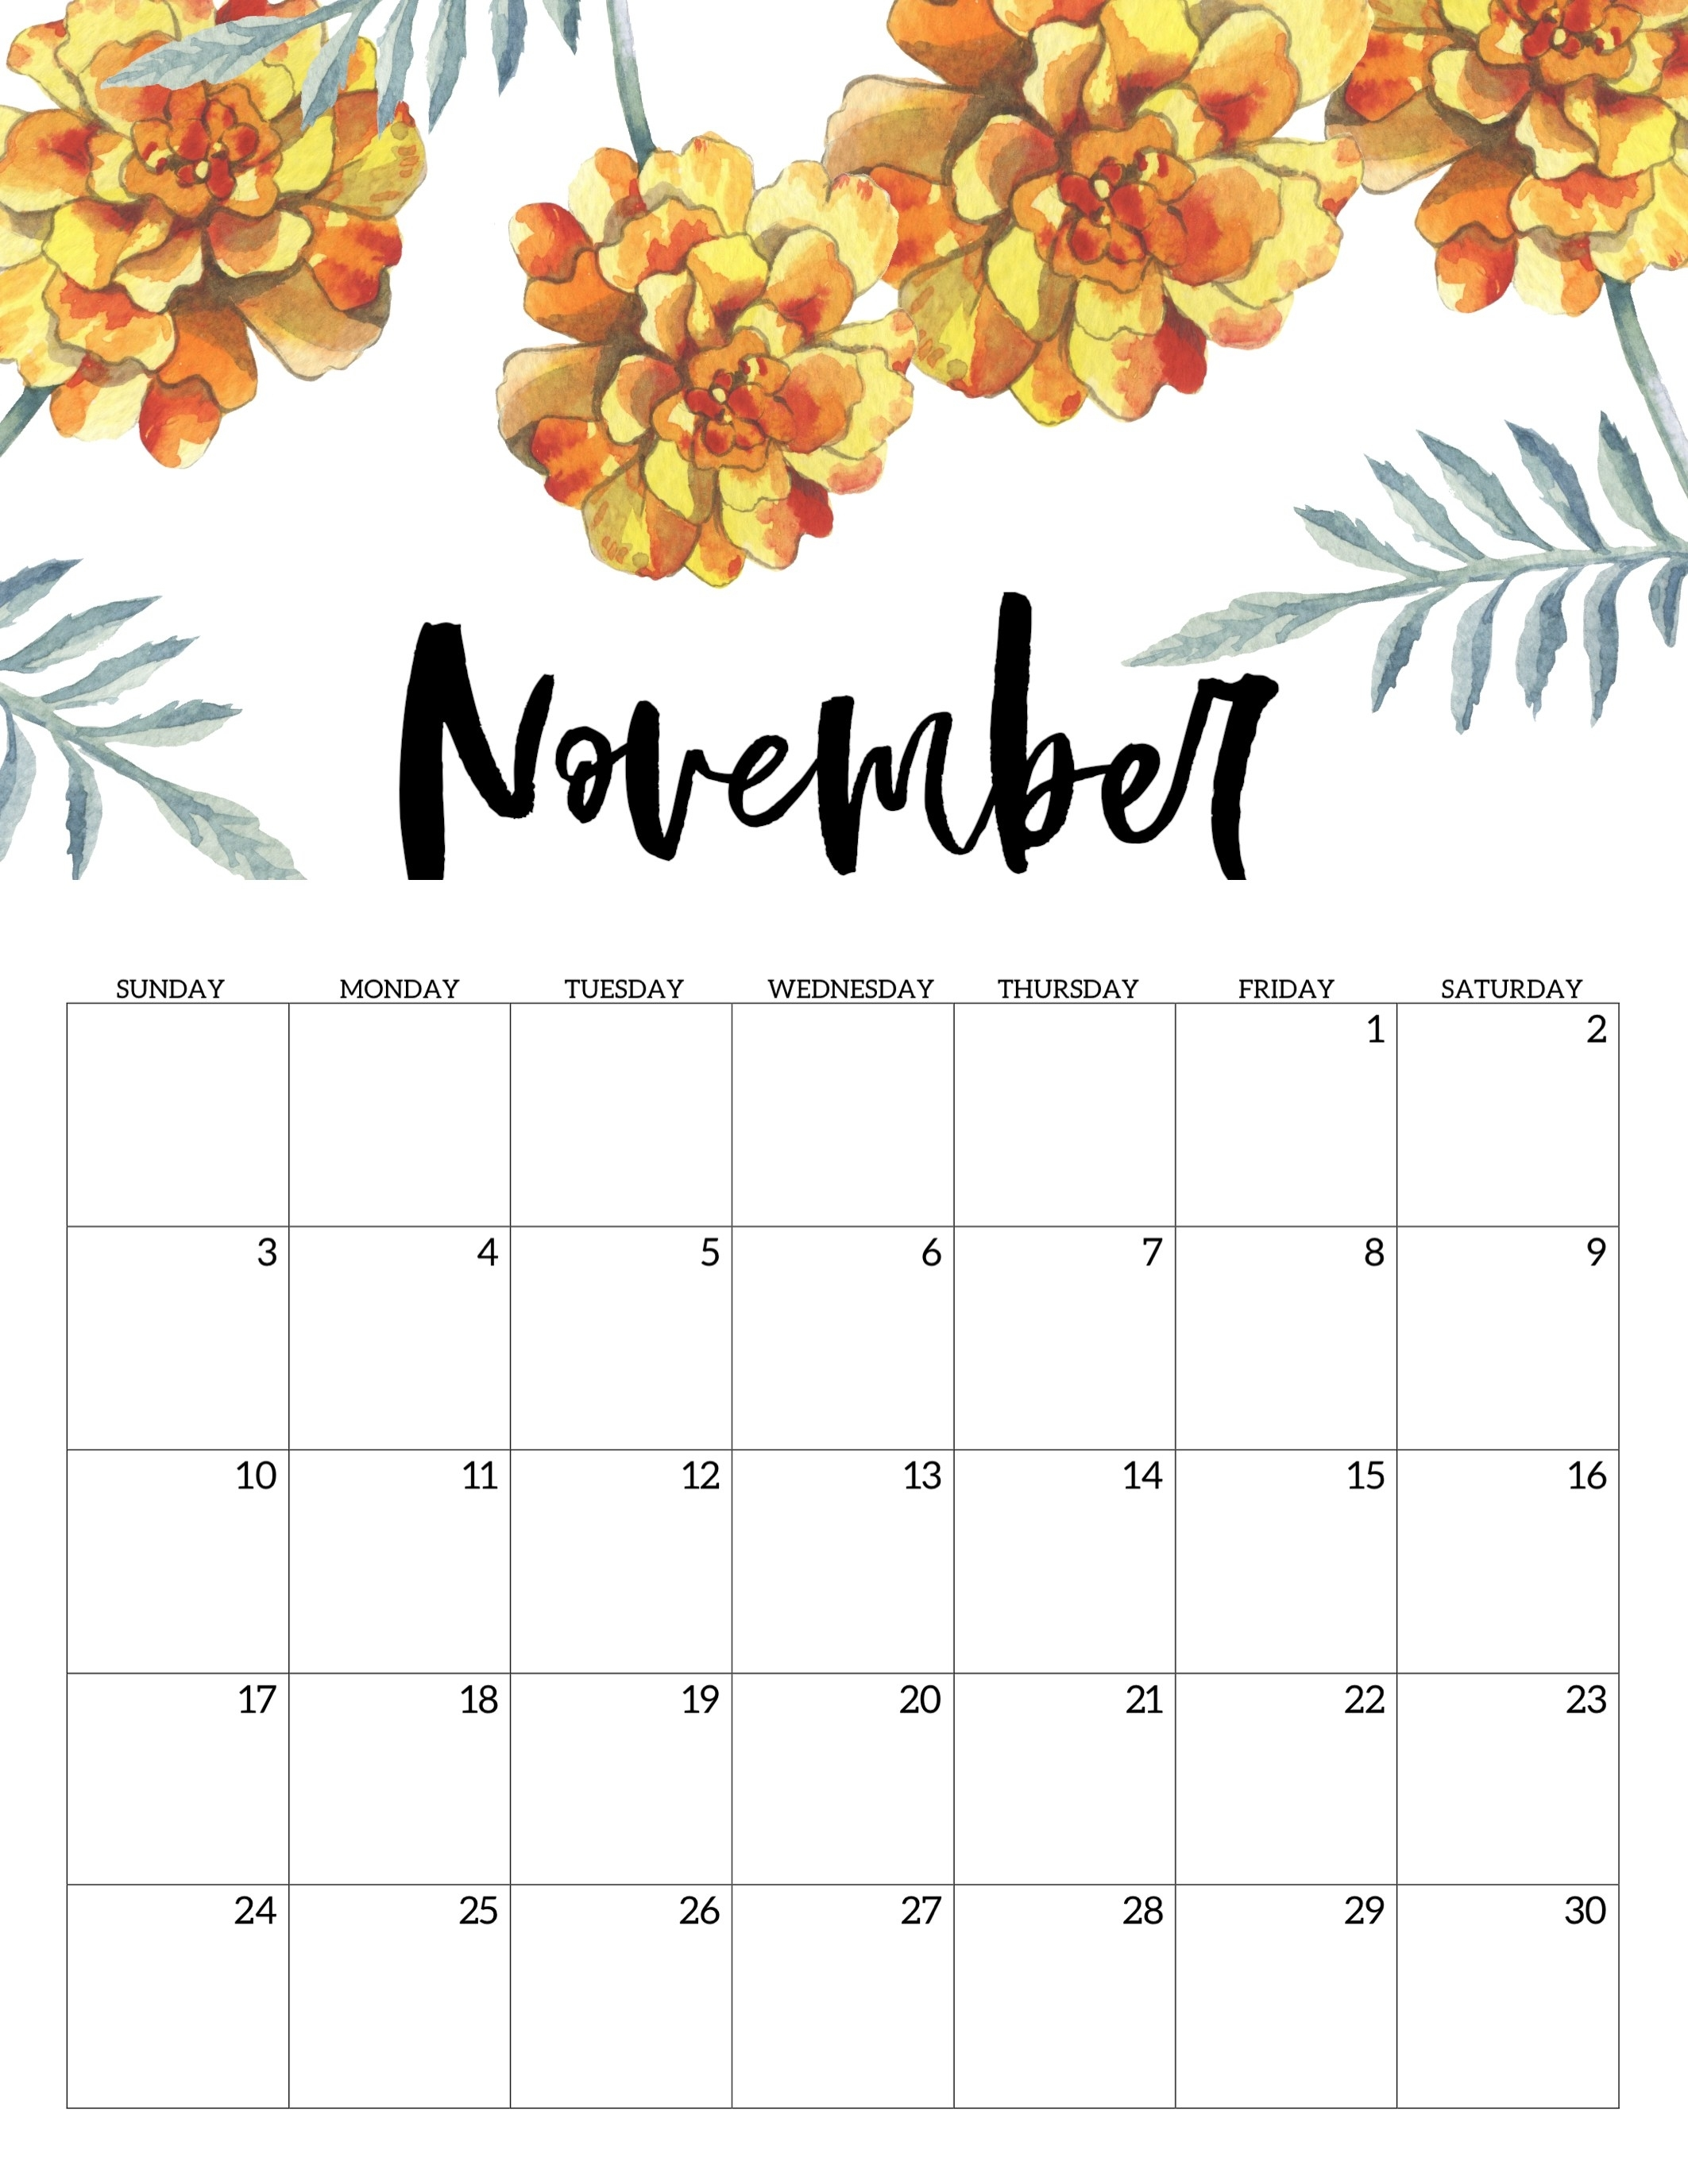 Free Printable Calendar 2019 - Floral - Paper Trail Design for 2019 2020 Girly Calendar Printable